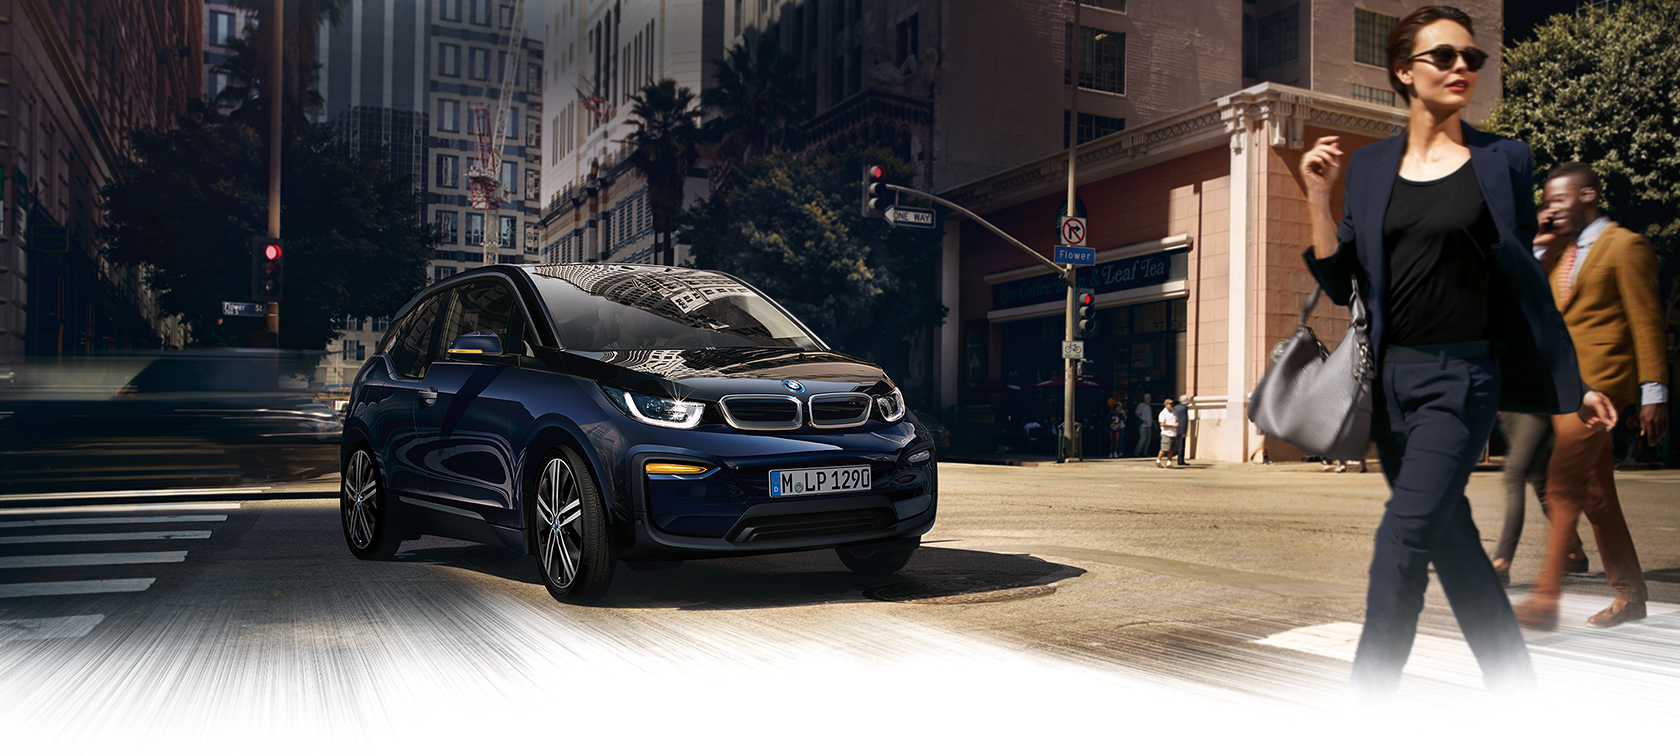 BMW i-Series i3 dark blue city car on crossway